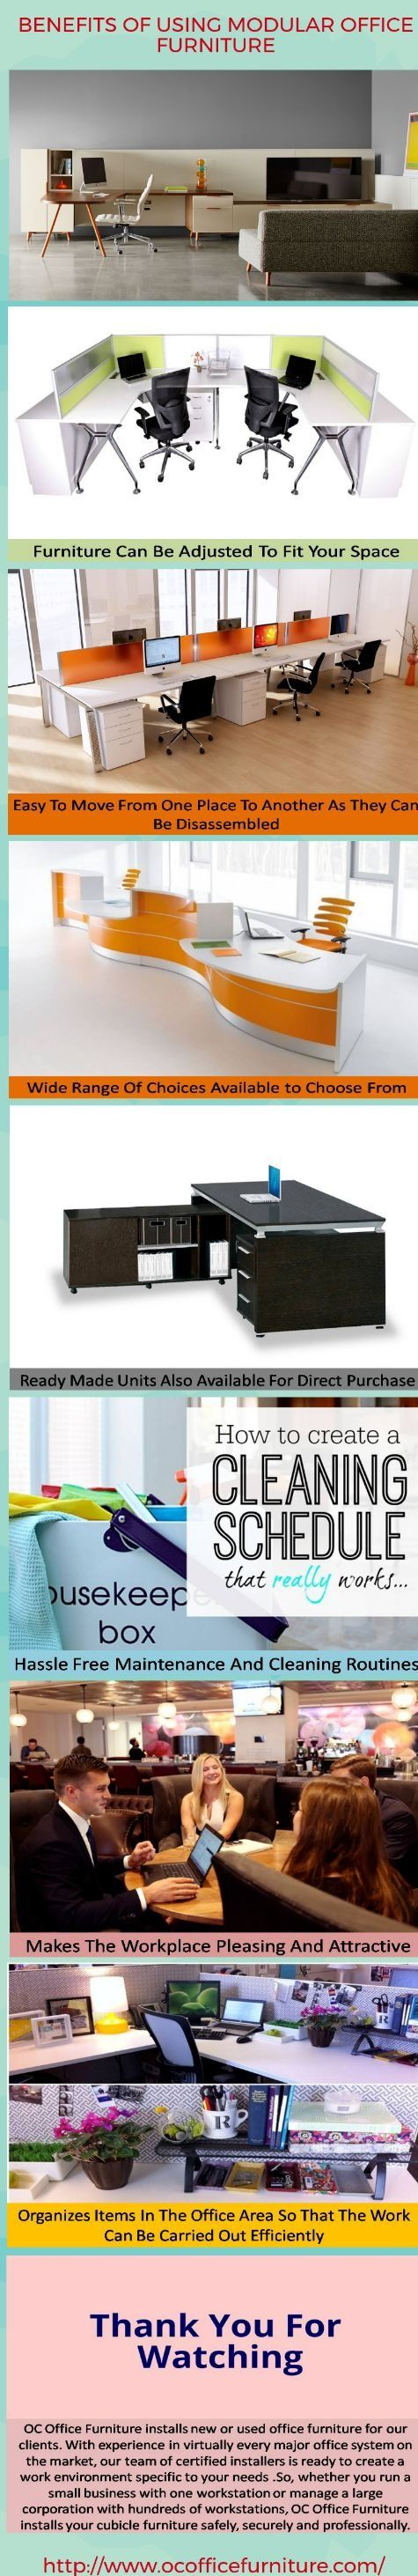 clearance office furniture free. OC Office Furniture Installs New Or Used For Our Clients. With Experience In Clearance Free